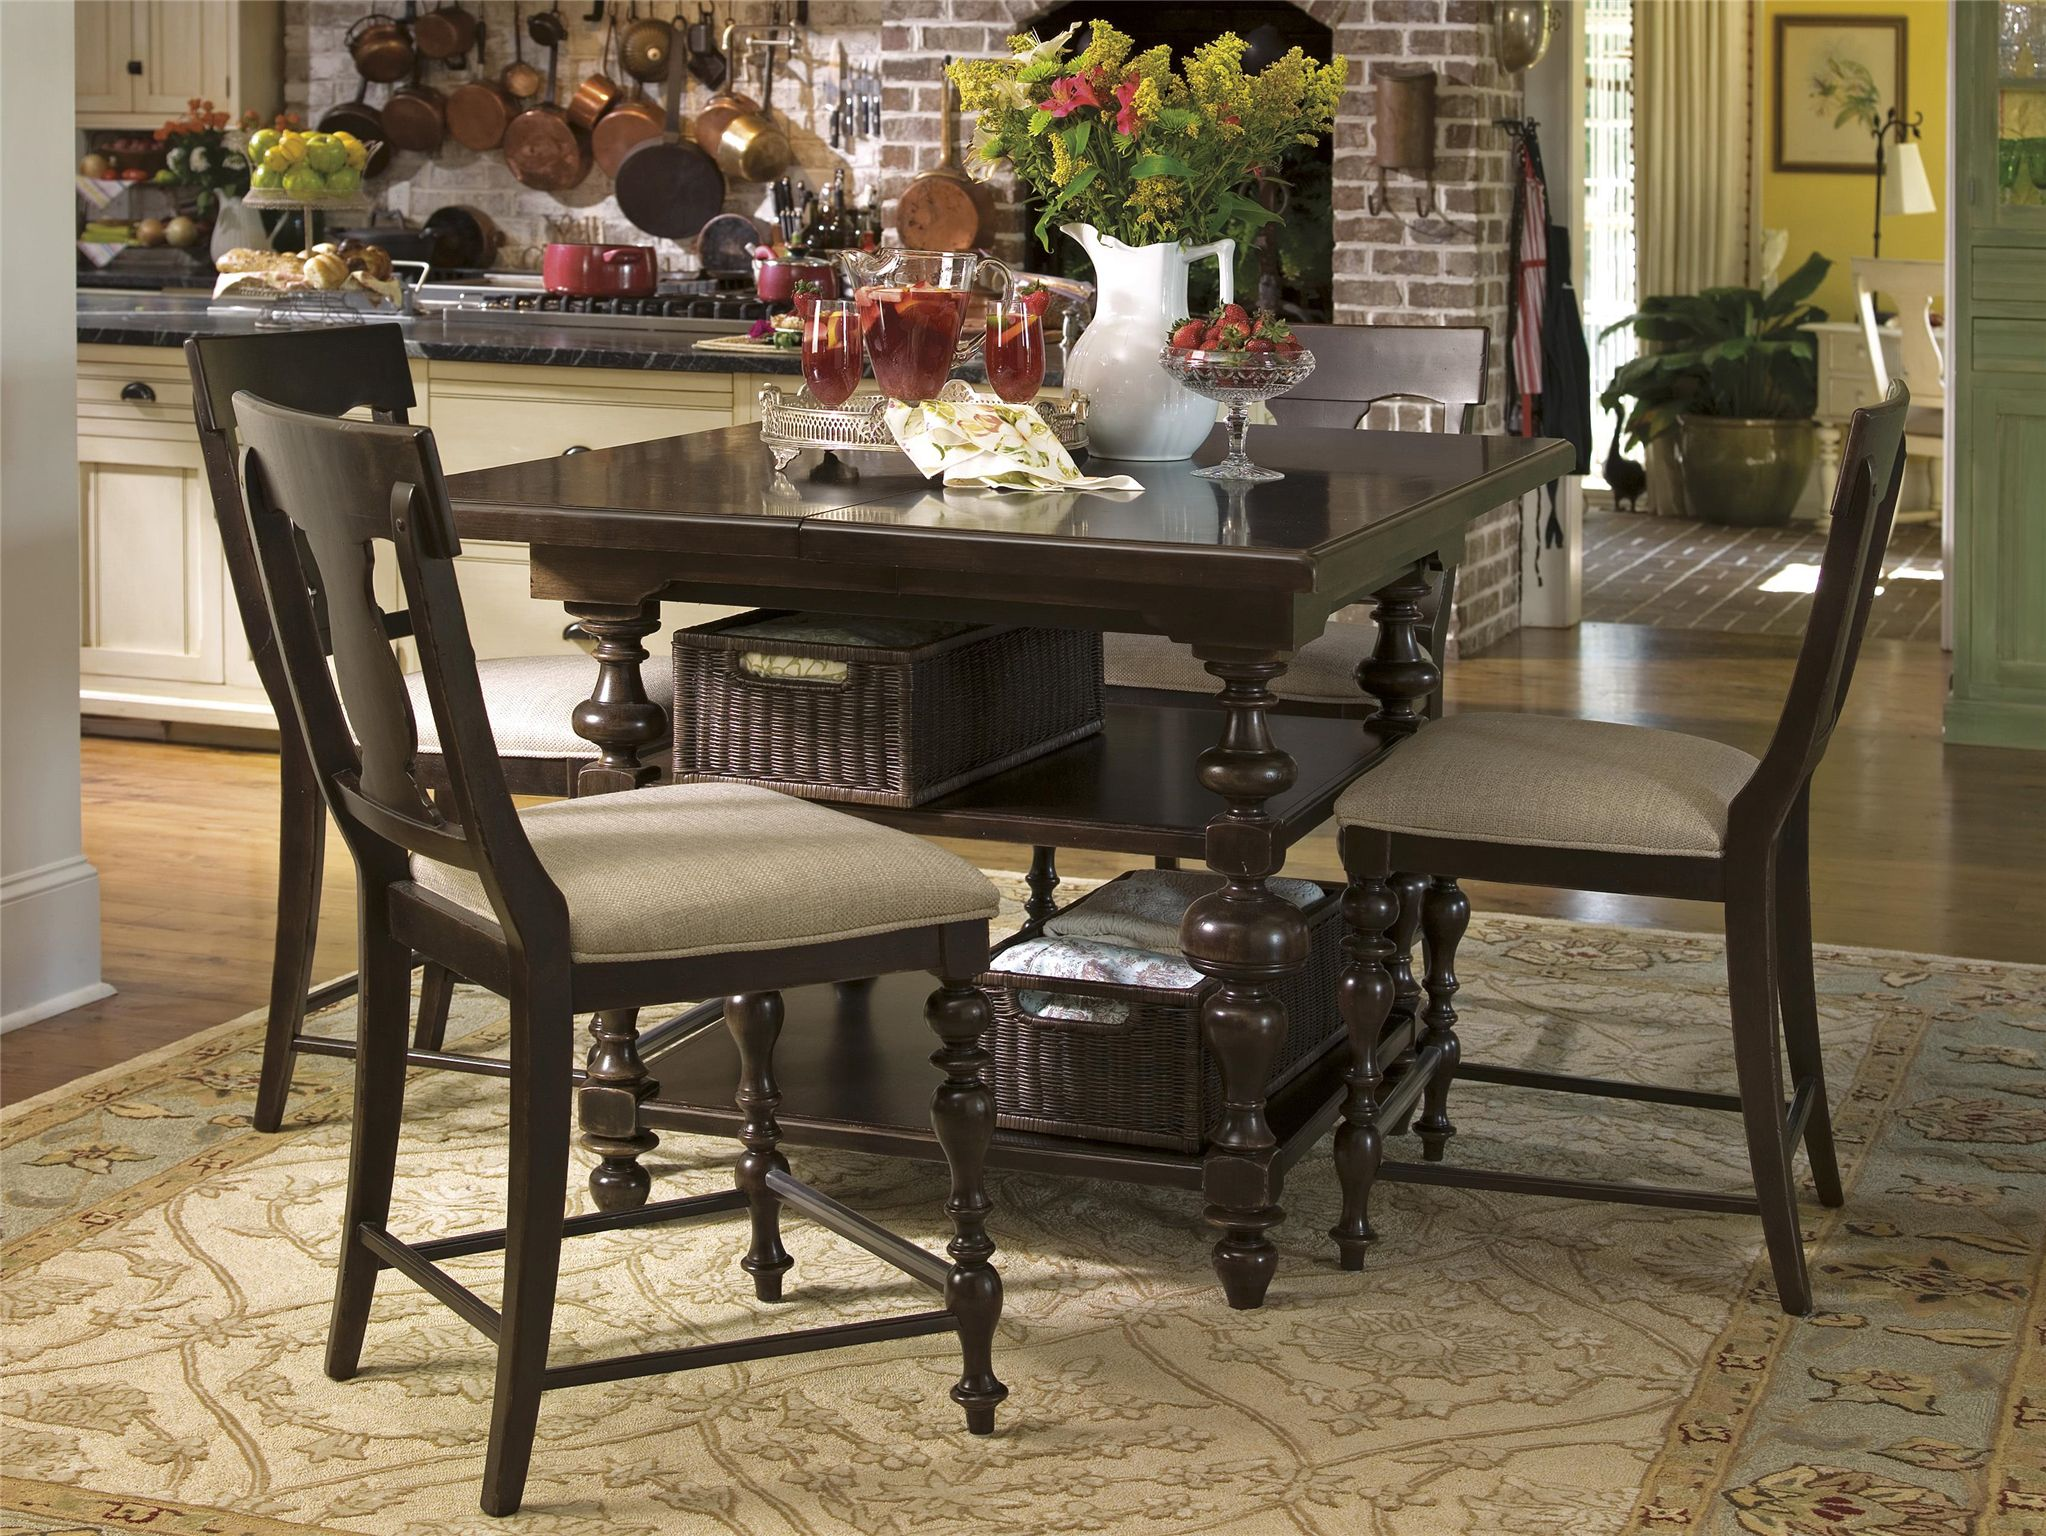 Universal Furniture | Paula Deen Home Kitchen Gathering Table & Universal Furniture | Paula Deen Home Kitchen Gathering Table ...